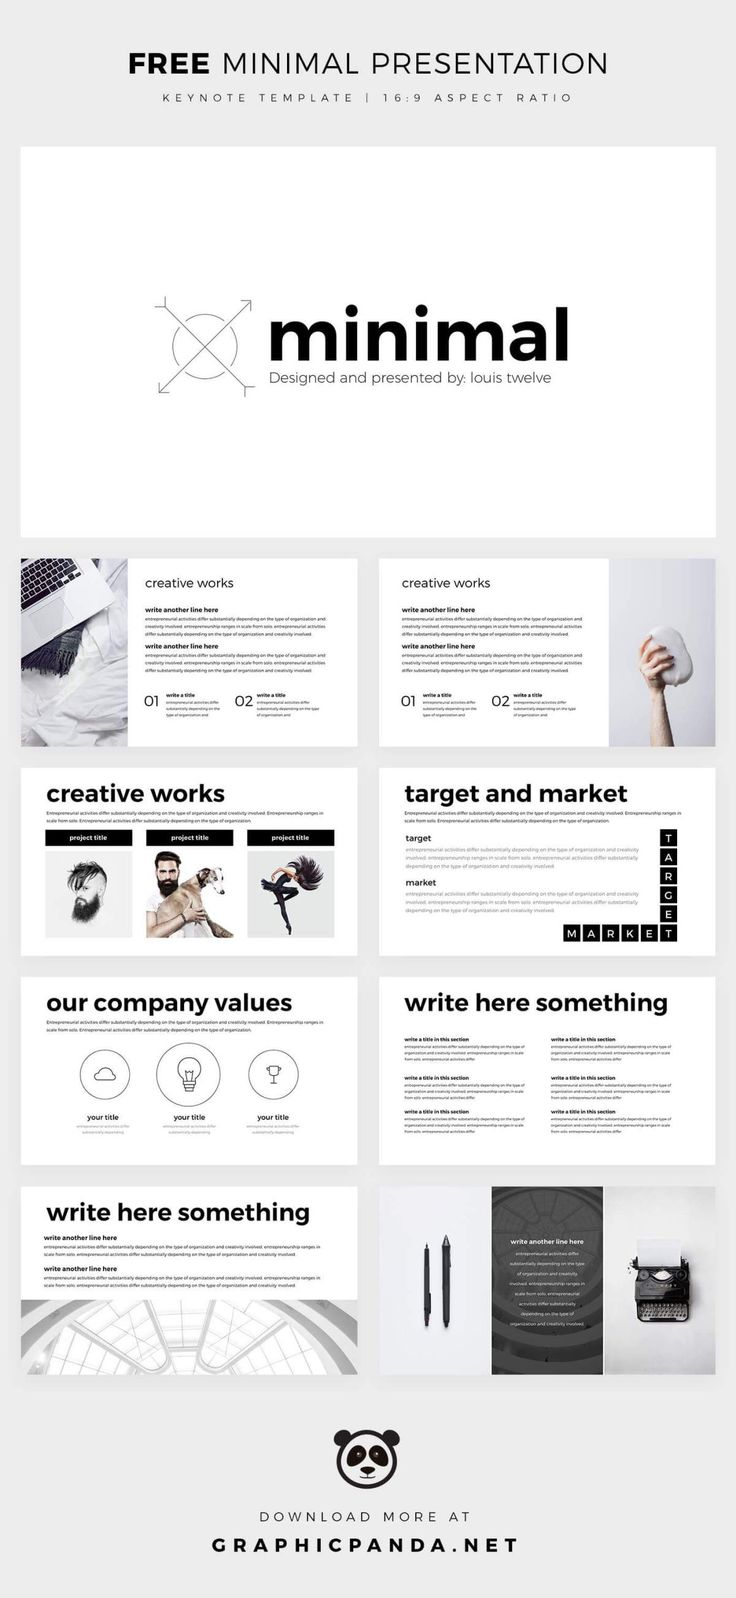 11 best free keynote templates graphicpanda images on pinterest free minimal powerpoint template create your ppt easy toneelgroepblik Choice Image